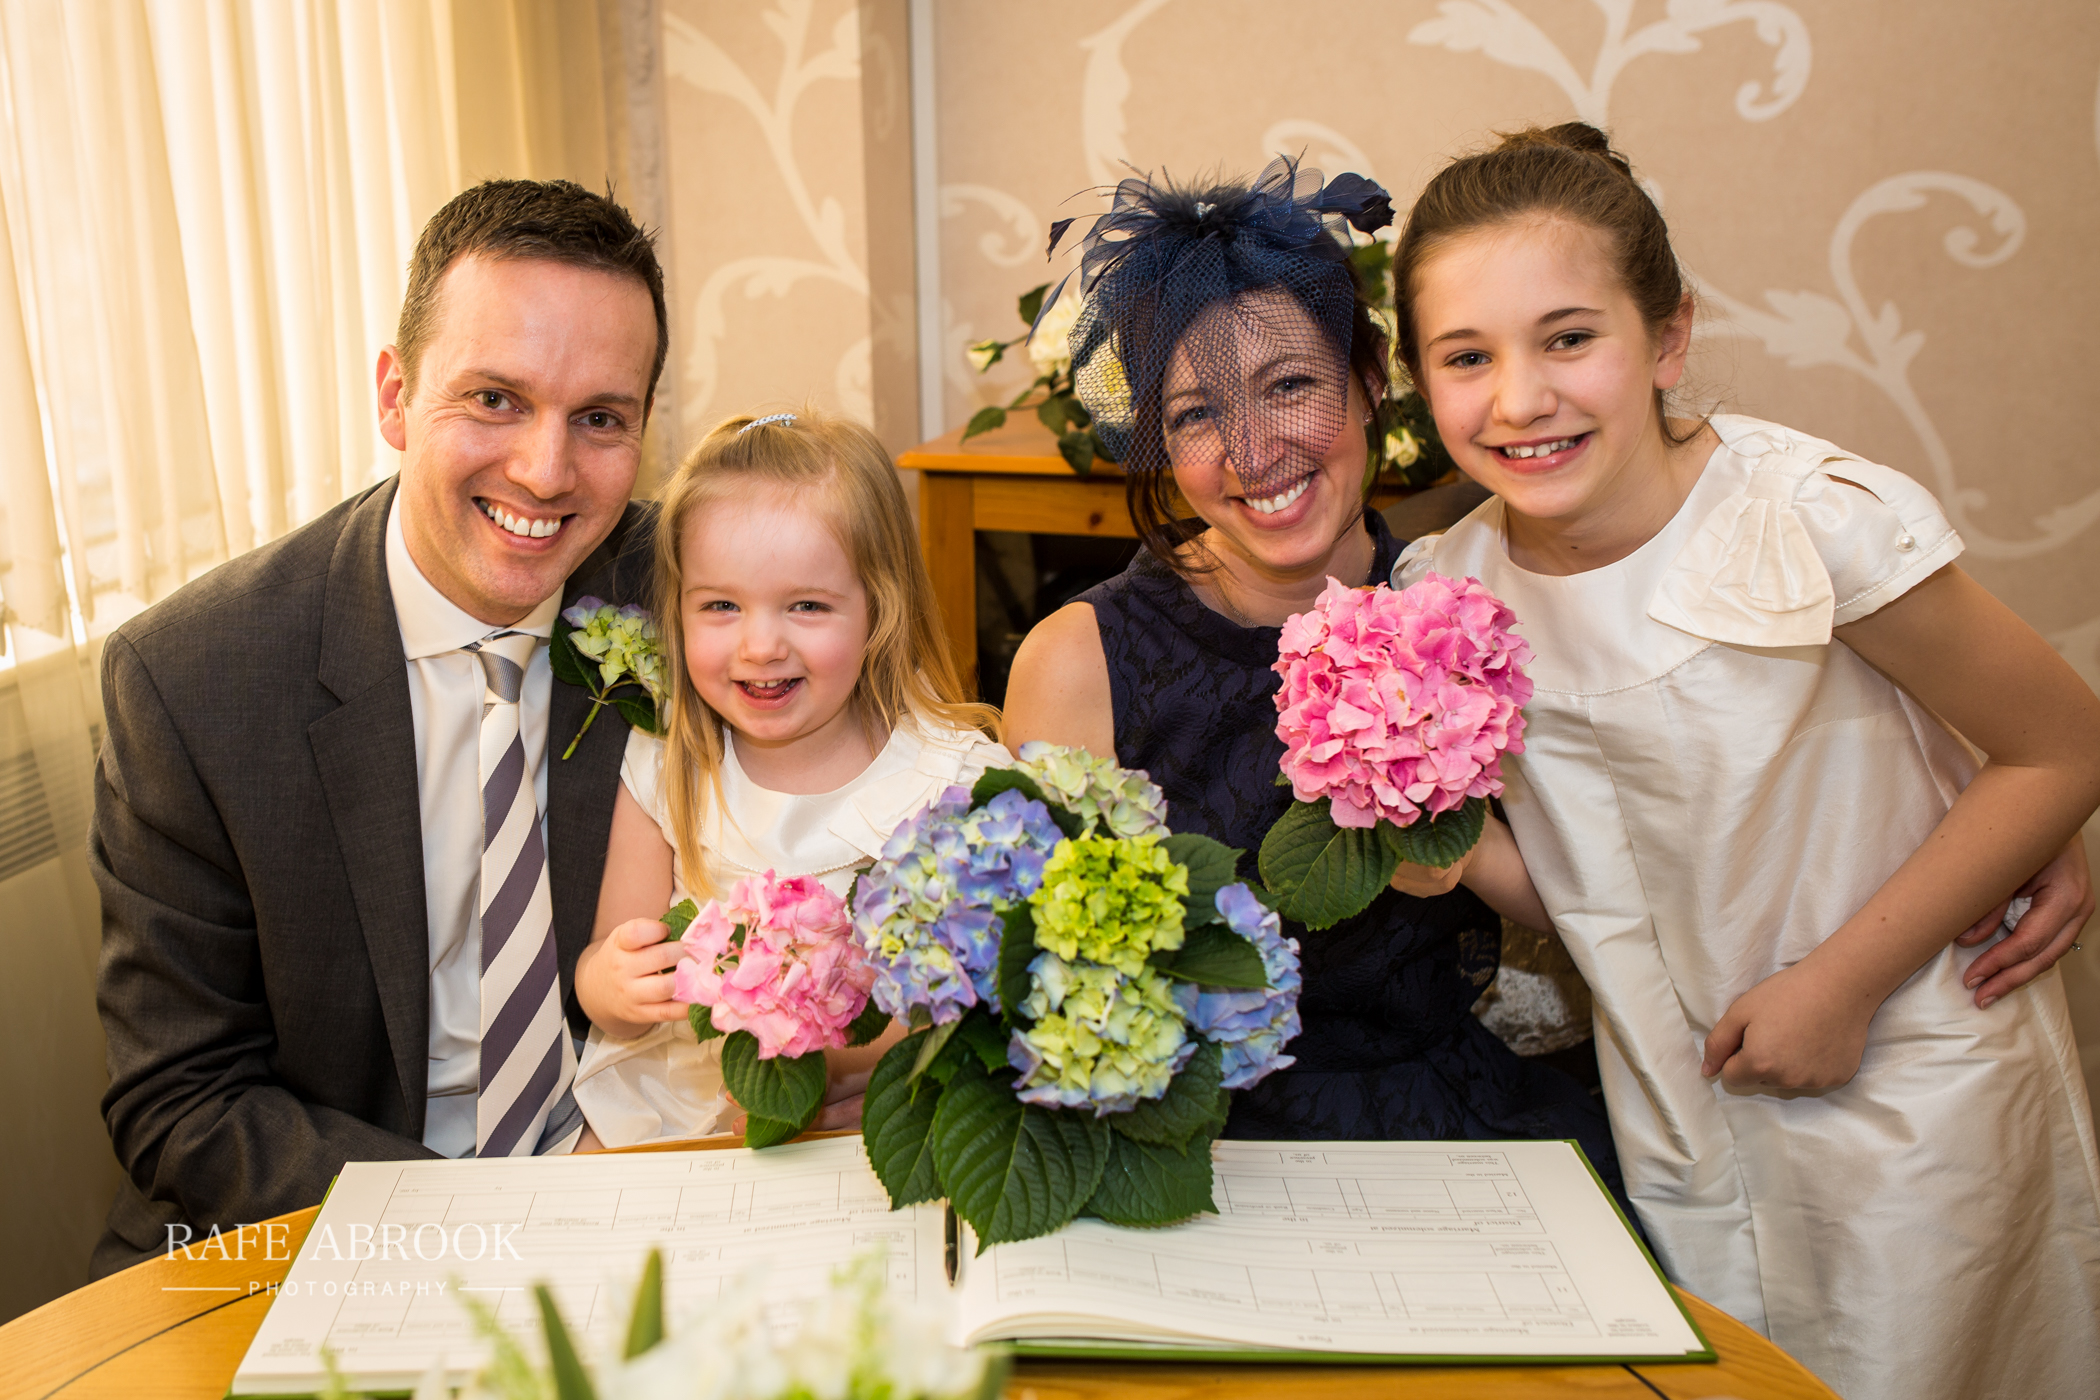 leigh & sarah wedding beeches solihull -1087.jpg